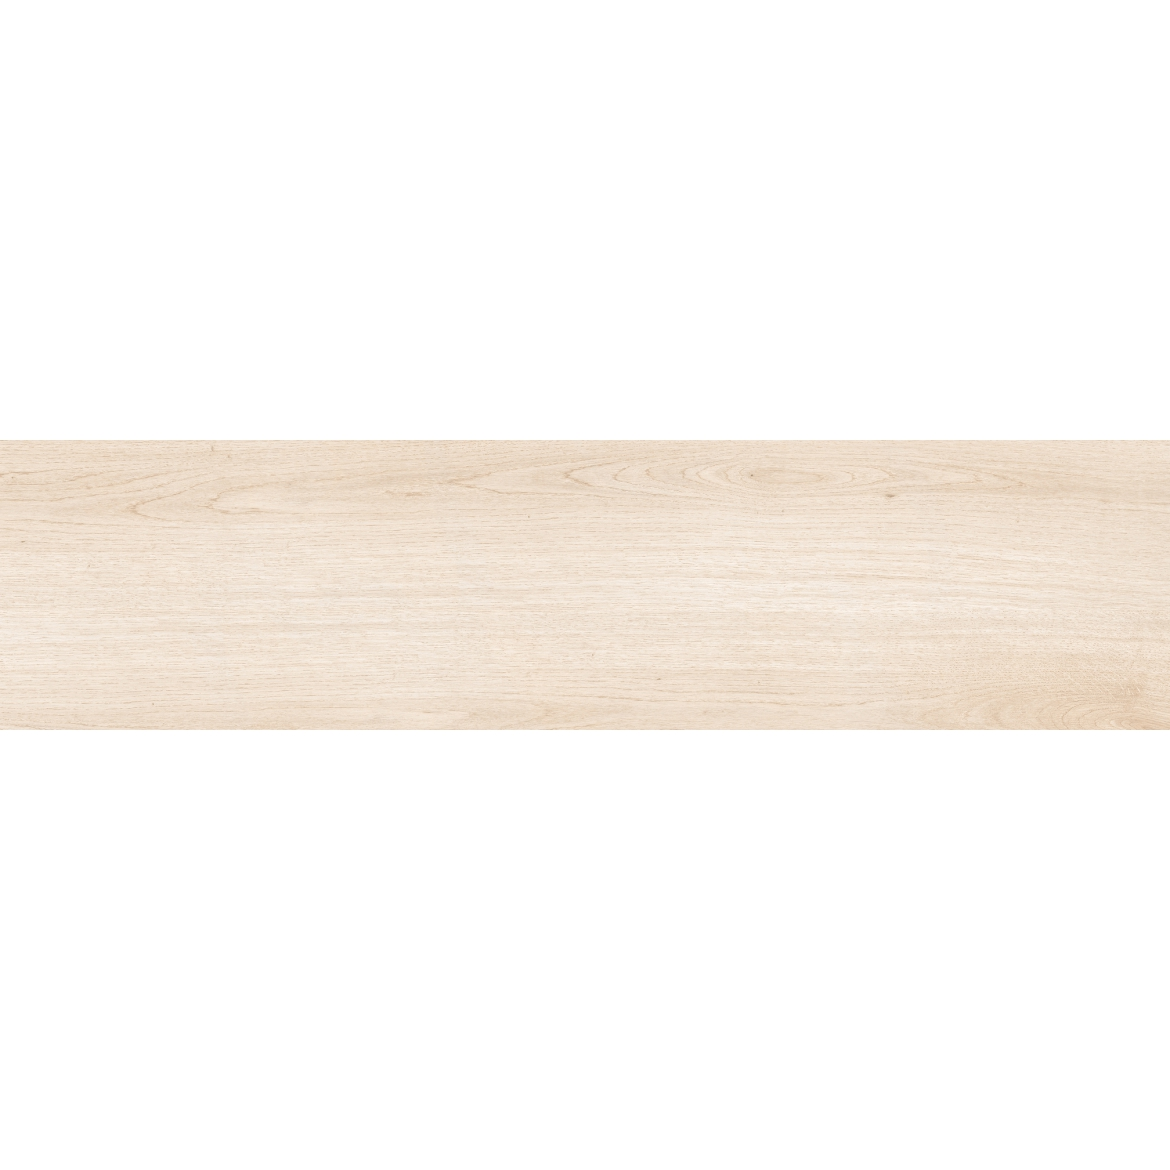 https://cerdesign.pl/3457-large_default/keraben-madeira-crema-natural-100-x-248-cm.jpg